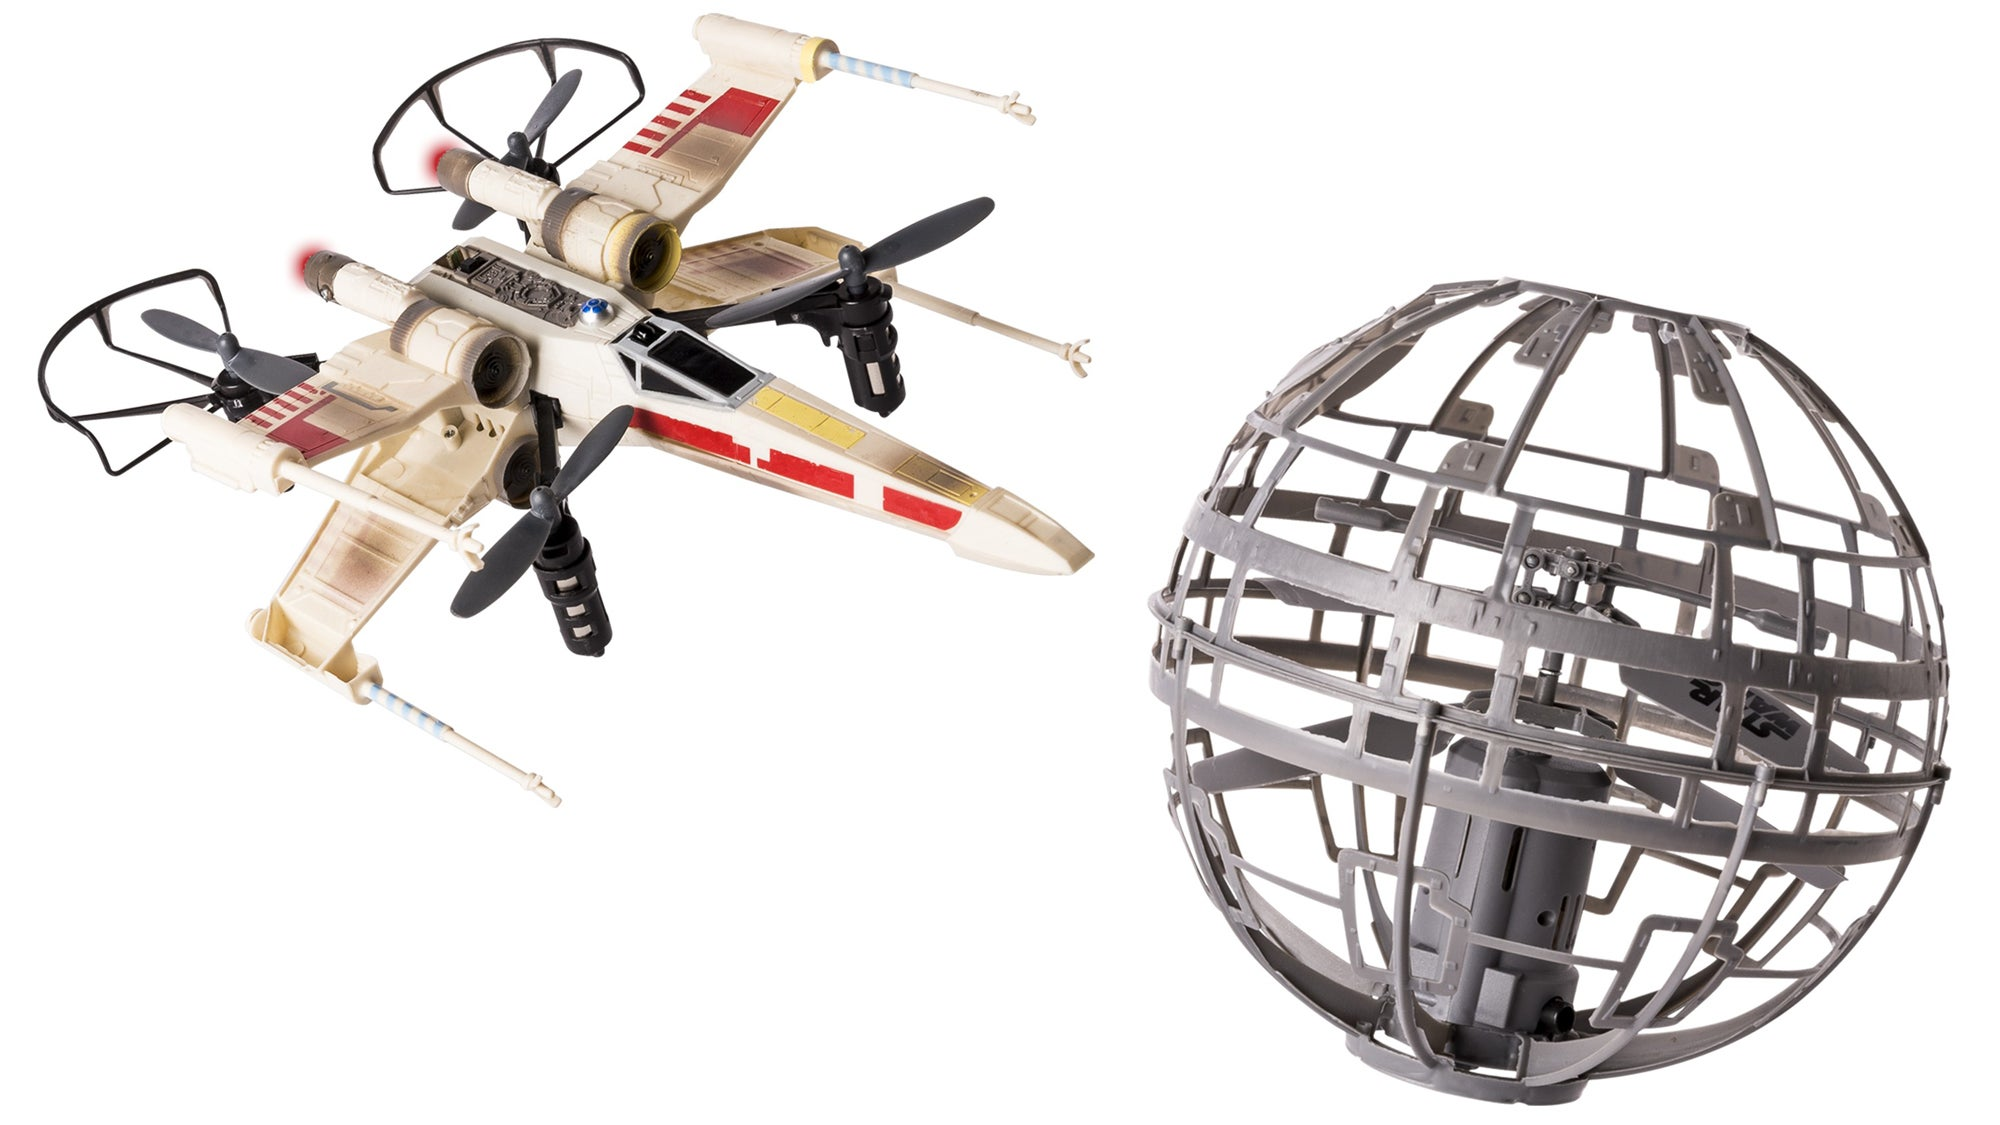 Pilot This X-wing Drone to Shoot Down an Auto-Hovering Death Star That Fires Right Back